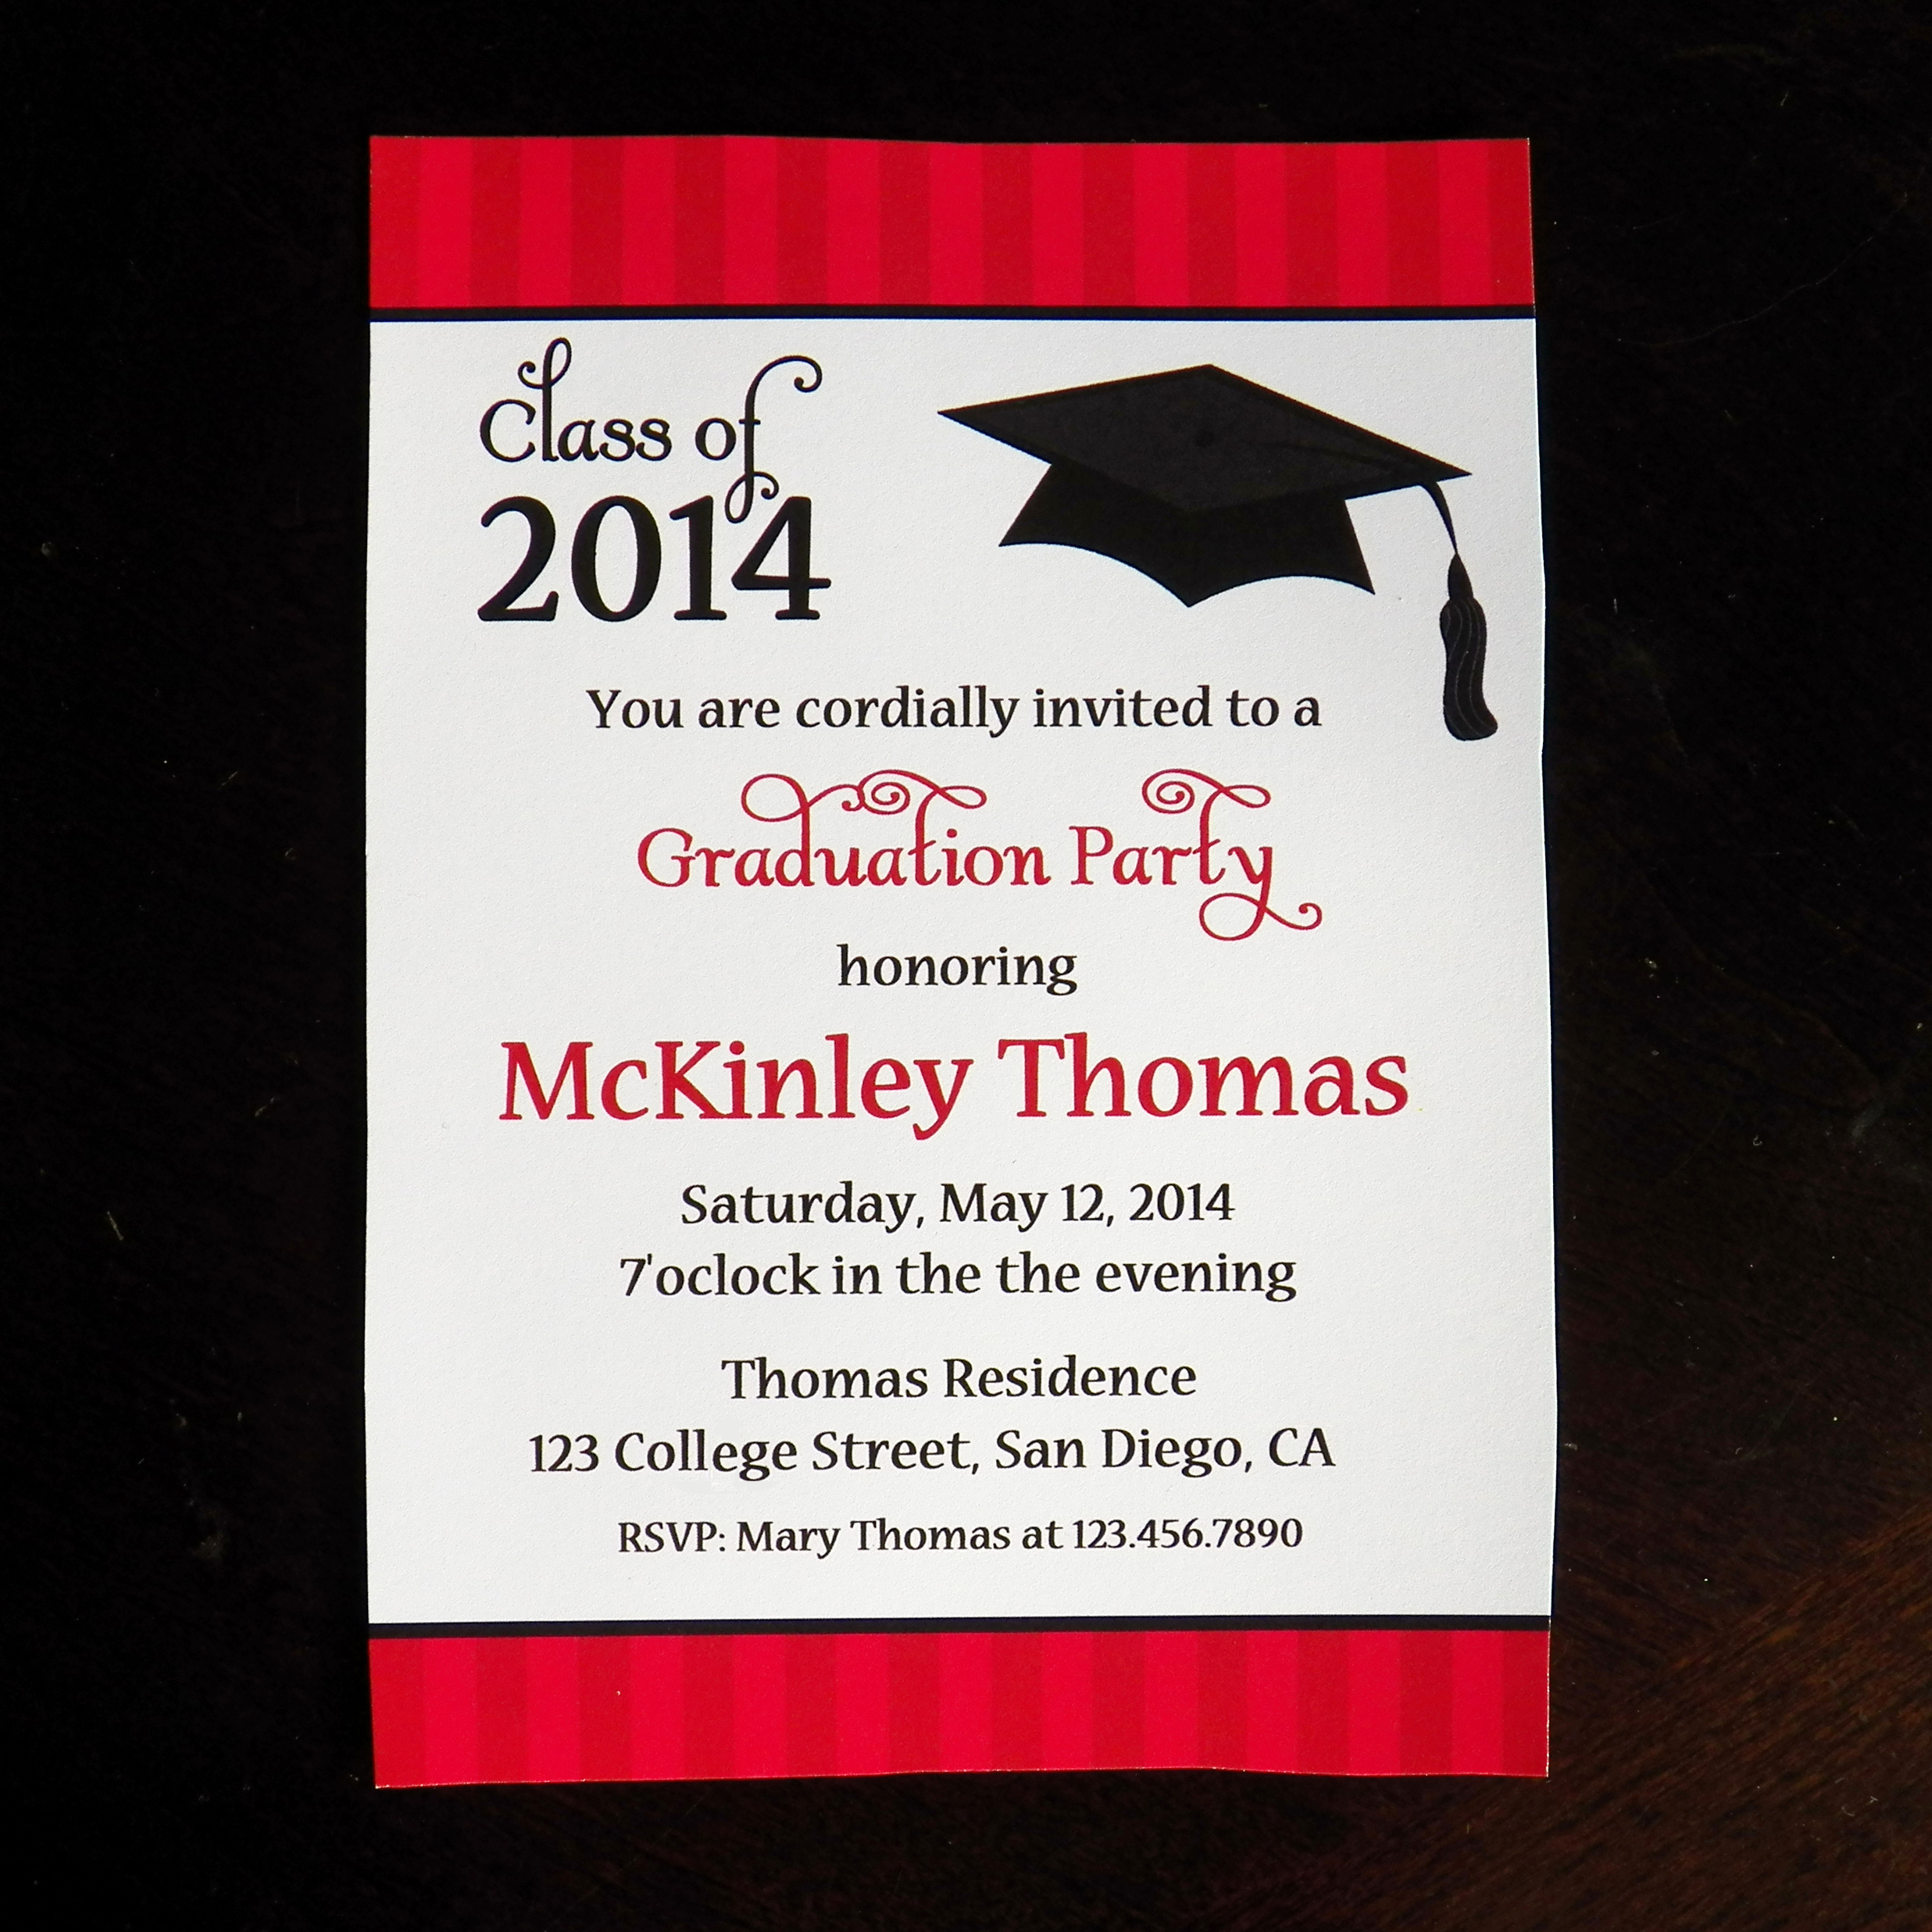 Graduation Celebration Invitation Wording Awesome Graduation Party Hats F to Mckinley that Party Chick